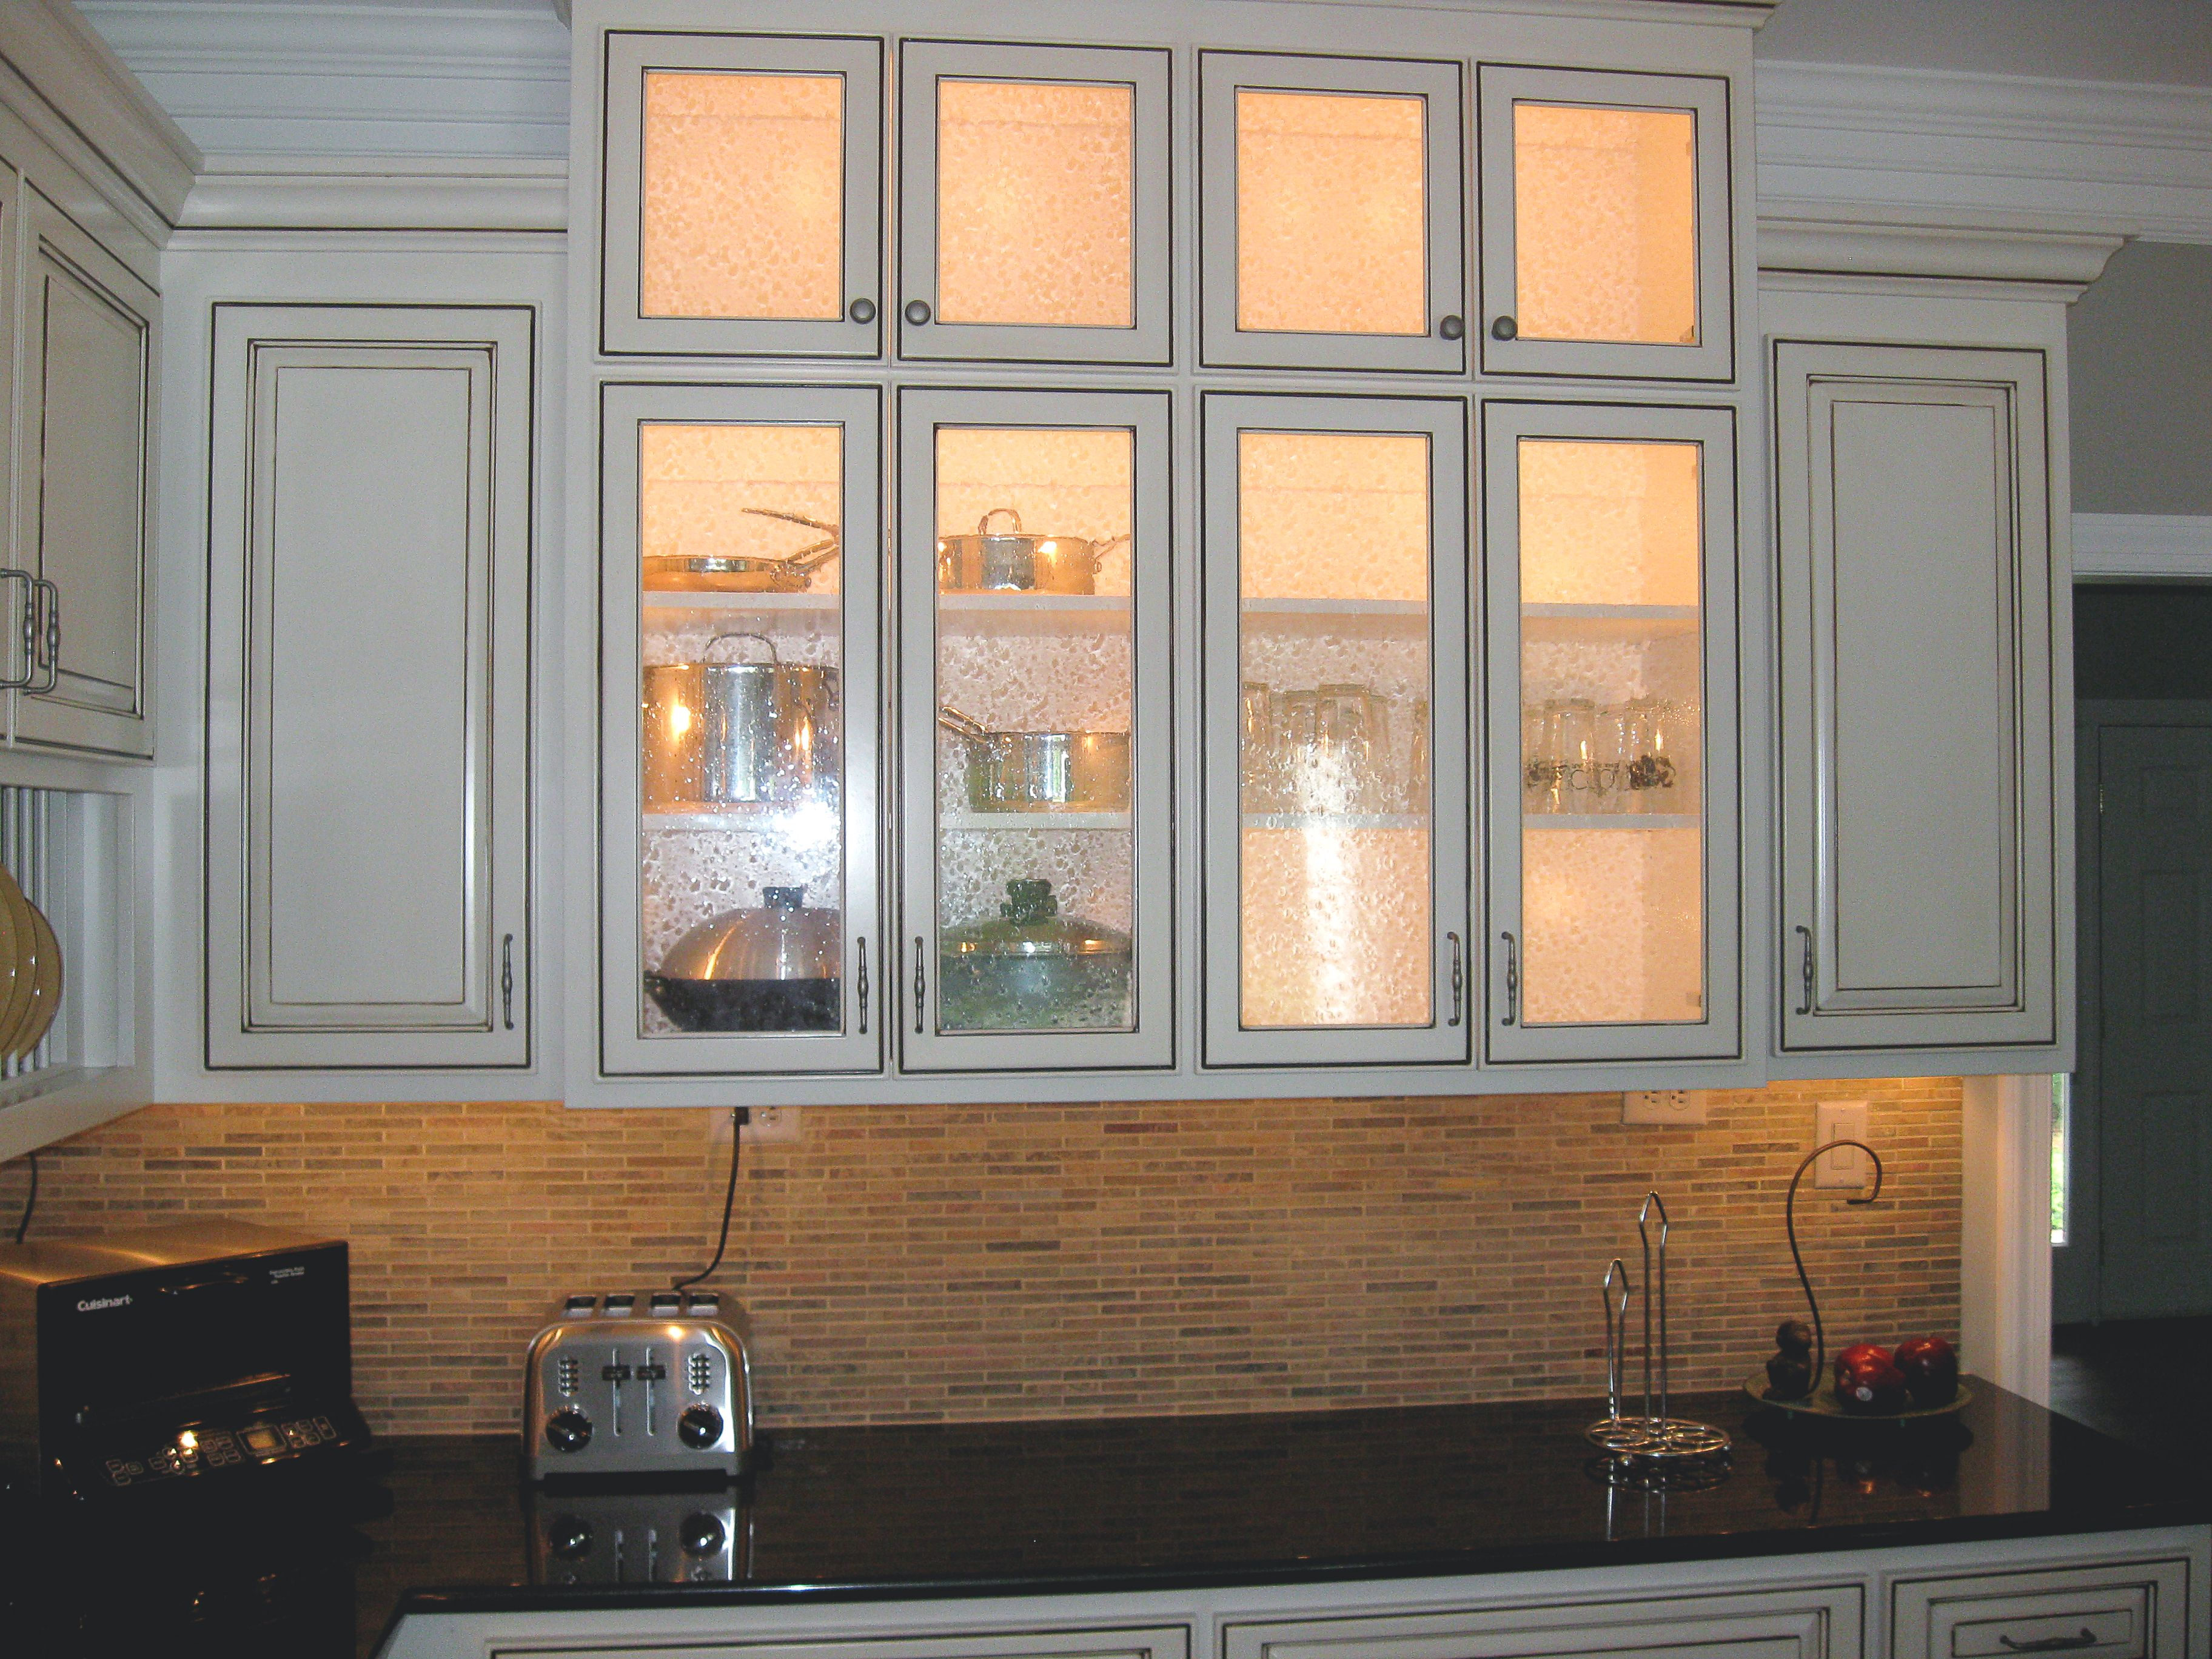 Lighting Can Make A Huge Difference This Custom Kitchen Remodel Includes Under Cabinet Lighting And In Cabinet Home Remodeling Remodel Custom Kitchen Remodel